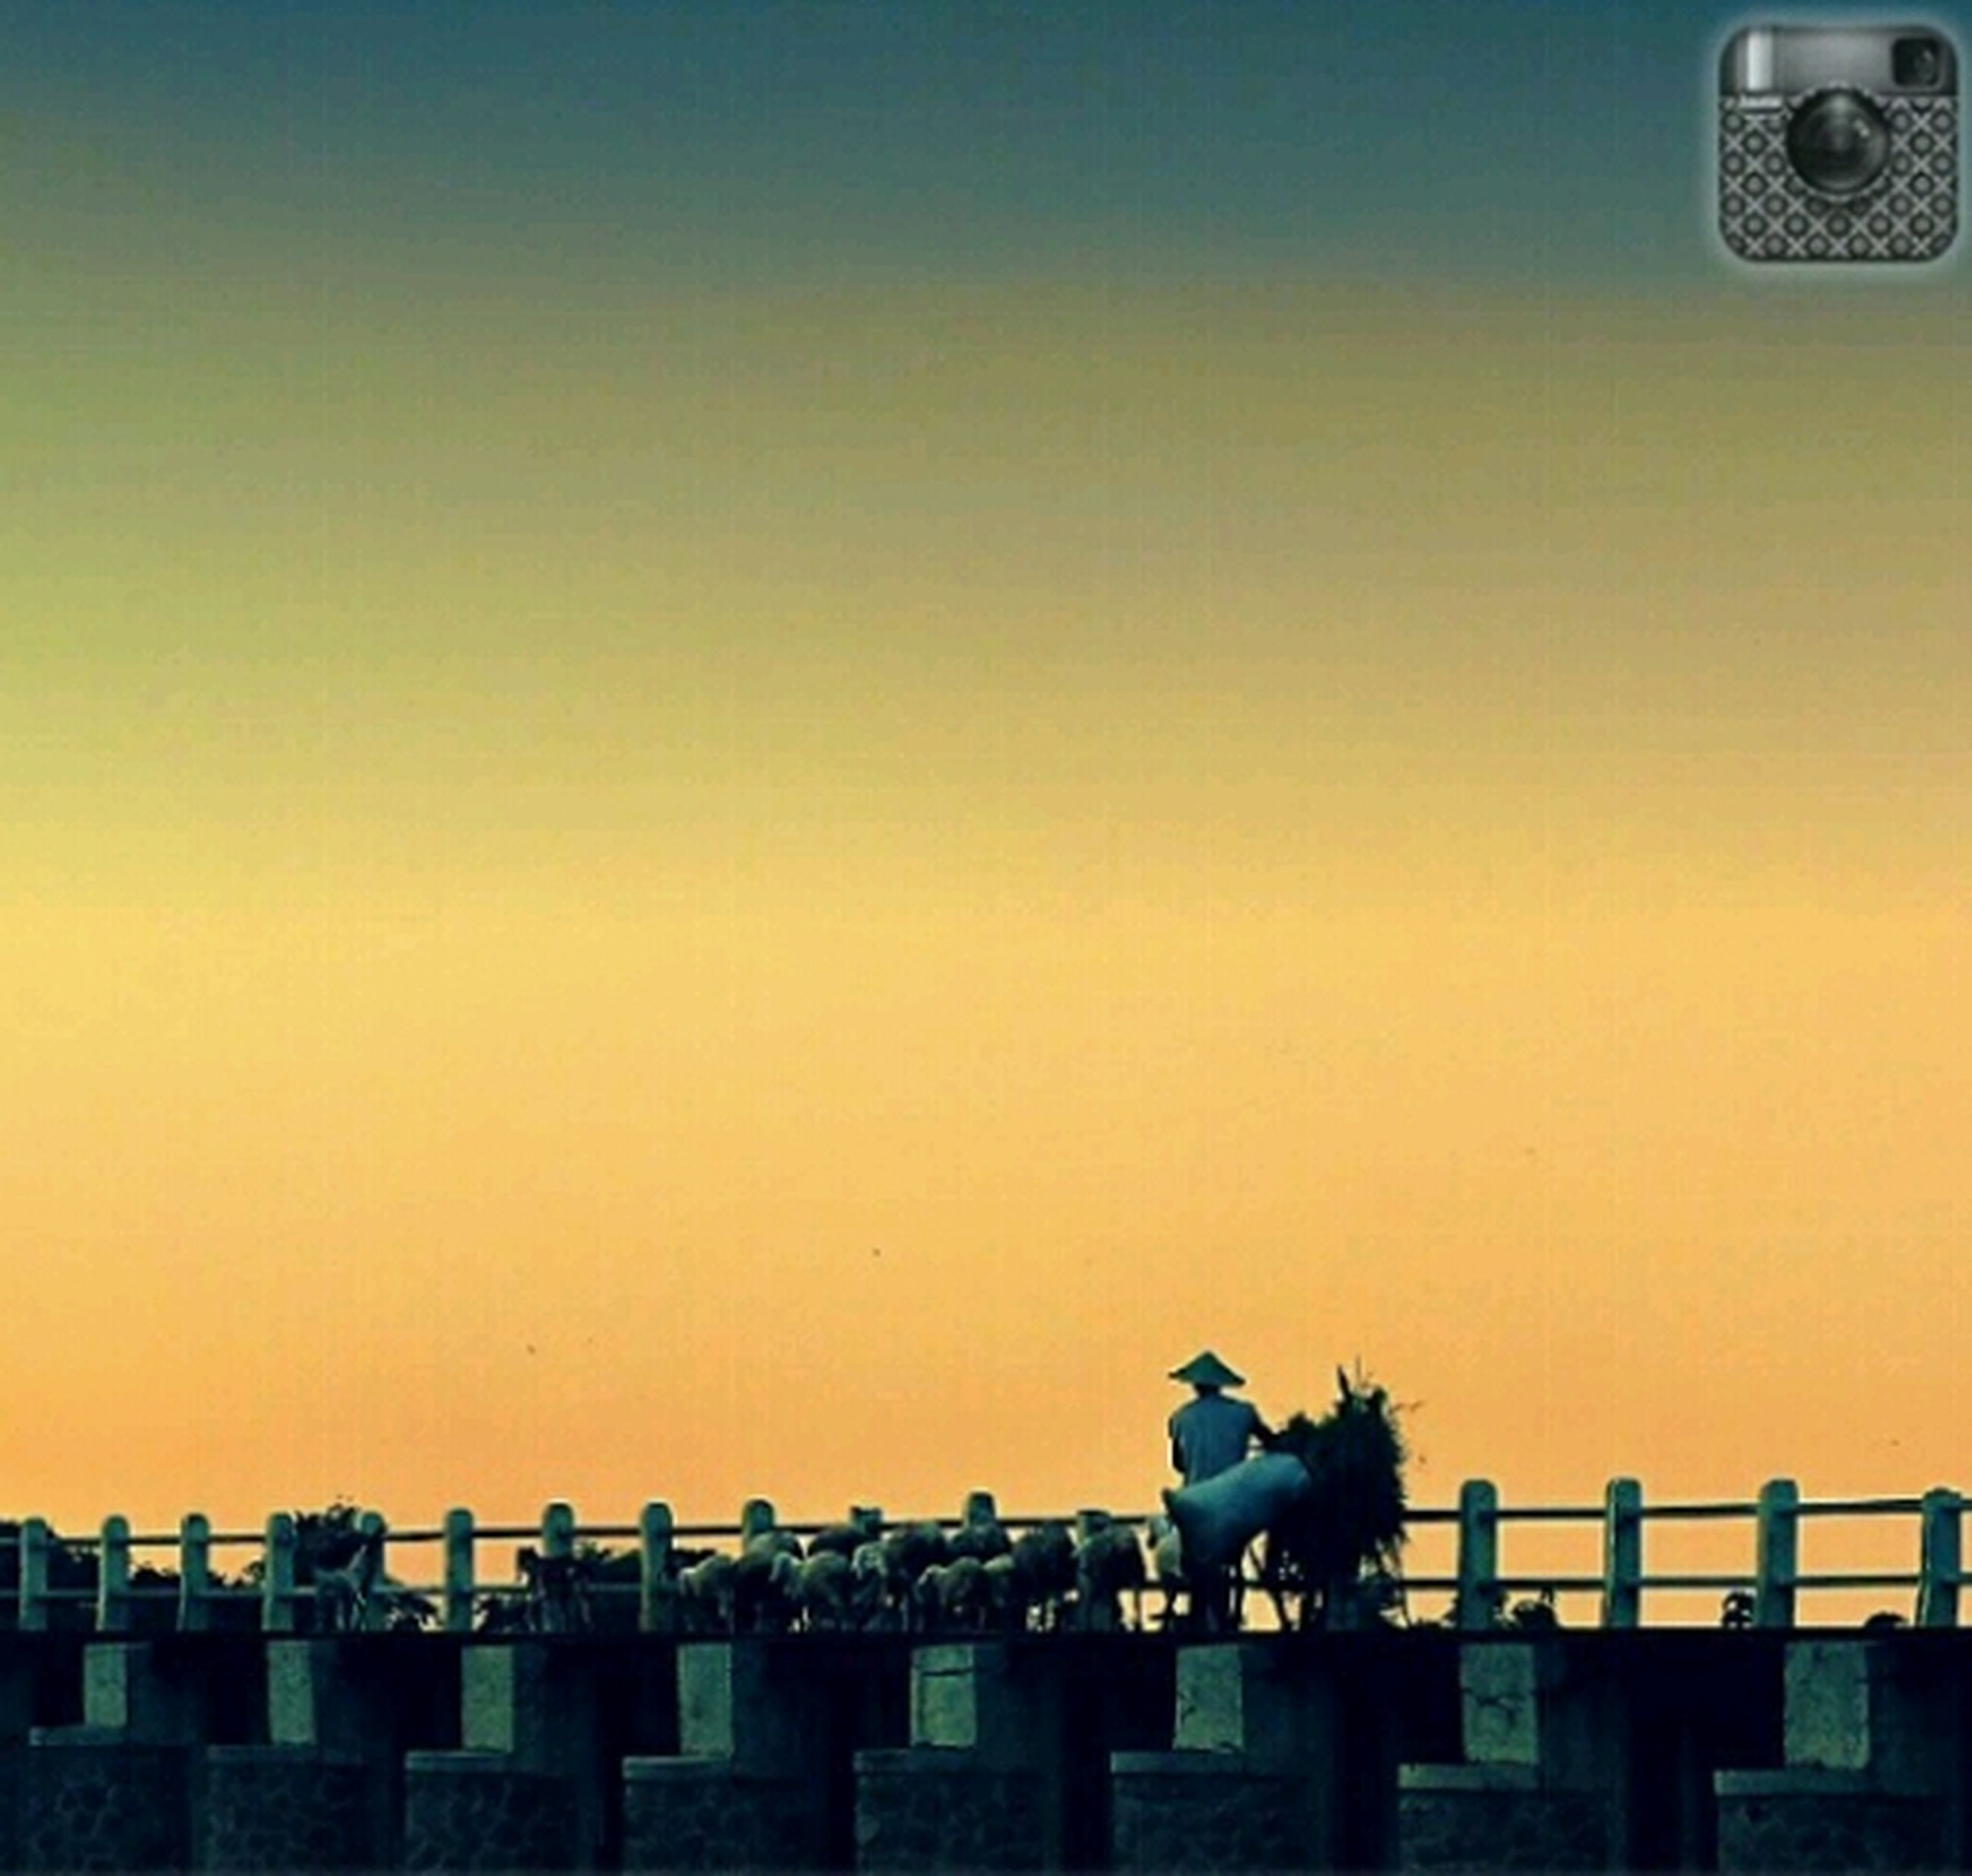 copy space, animal themes, one animal, clear sky, animals in the wild, bird, built structure, wildlife, sunset, perching, architecture, building exterior, yellow, low angle view, outdoors, no people, orange color, flying, roof, side view